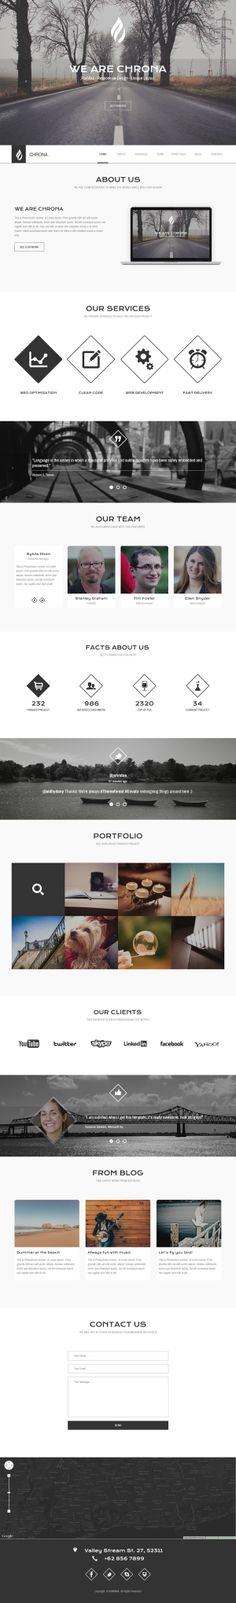 CHRONA - Responsive One Page HTML5 Template by aldhy dany, via Behance